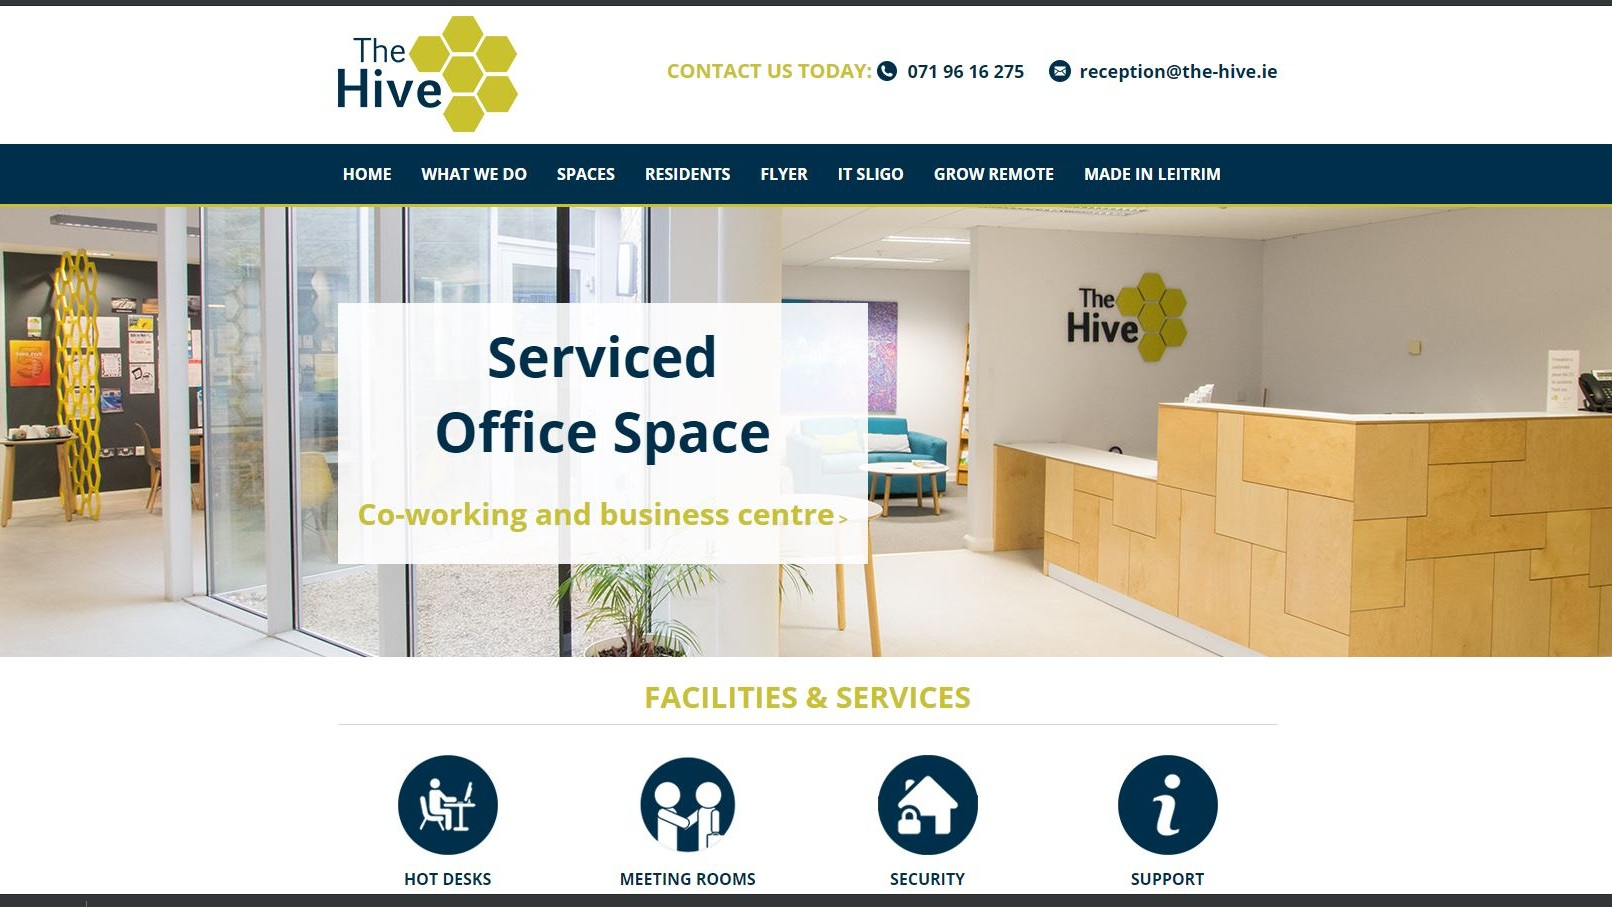 The Hive,  Carrick-on-Shannon offers office spaces,hot desk work areas and also large and small meeting rooms all with fibre broadband connection.  a contemporary, productive work environment with our hot desk areas allowing for ample individual work space.    Quick Contact: + 353 (0)71 96 16 275    reception@the-hive.ie